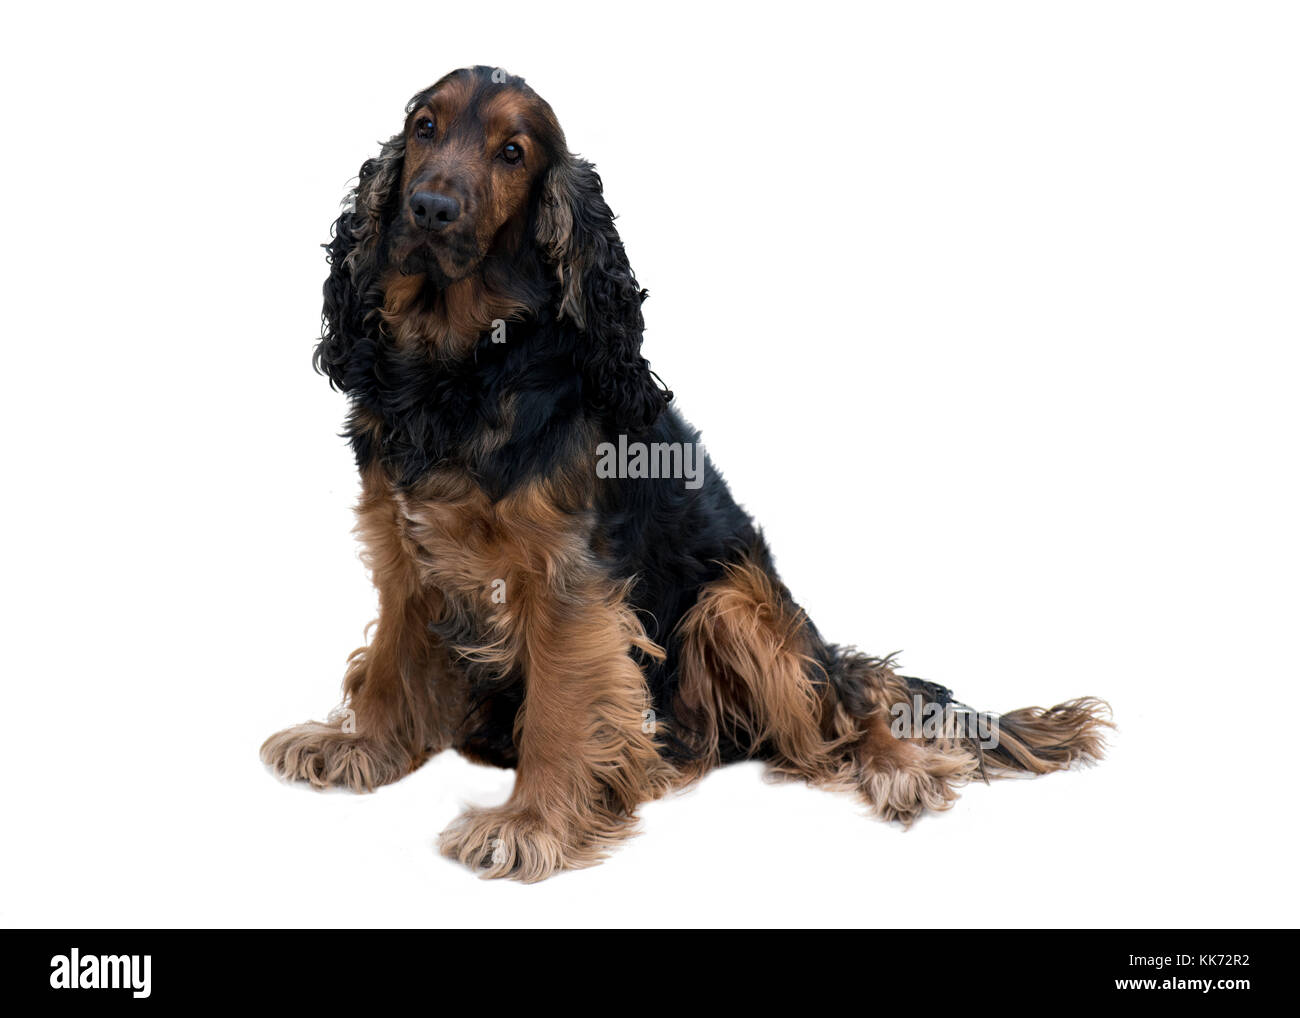 adorable obedient black and tan cocker spaniel with healthy teeth sat isolated on a white background - Stock Image